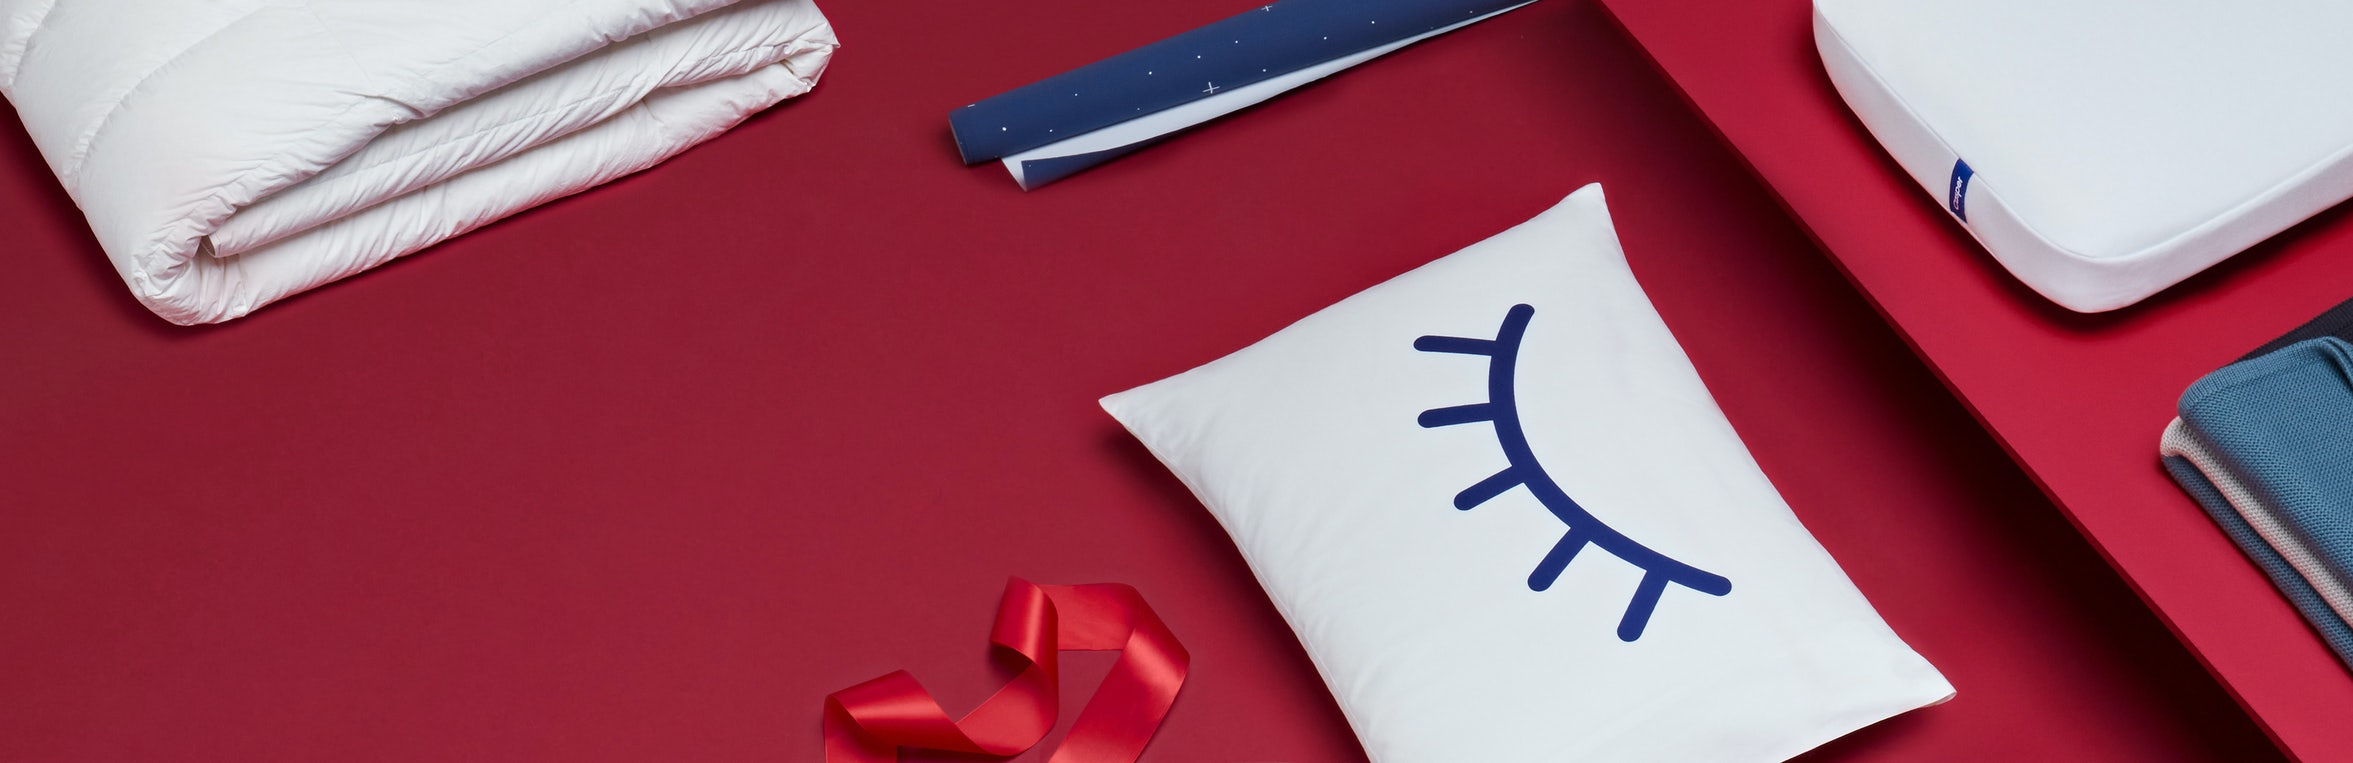 Flat lay of Casper pillows and duvet on a red background